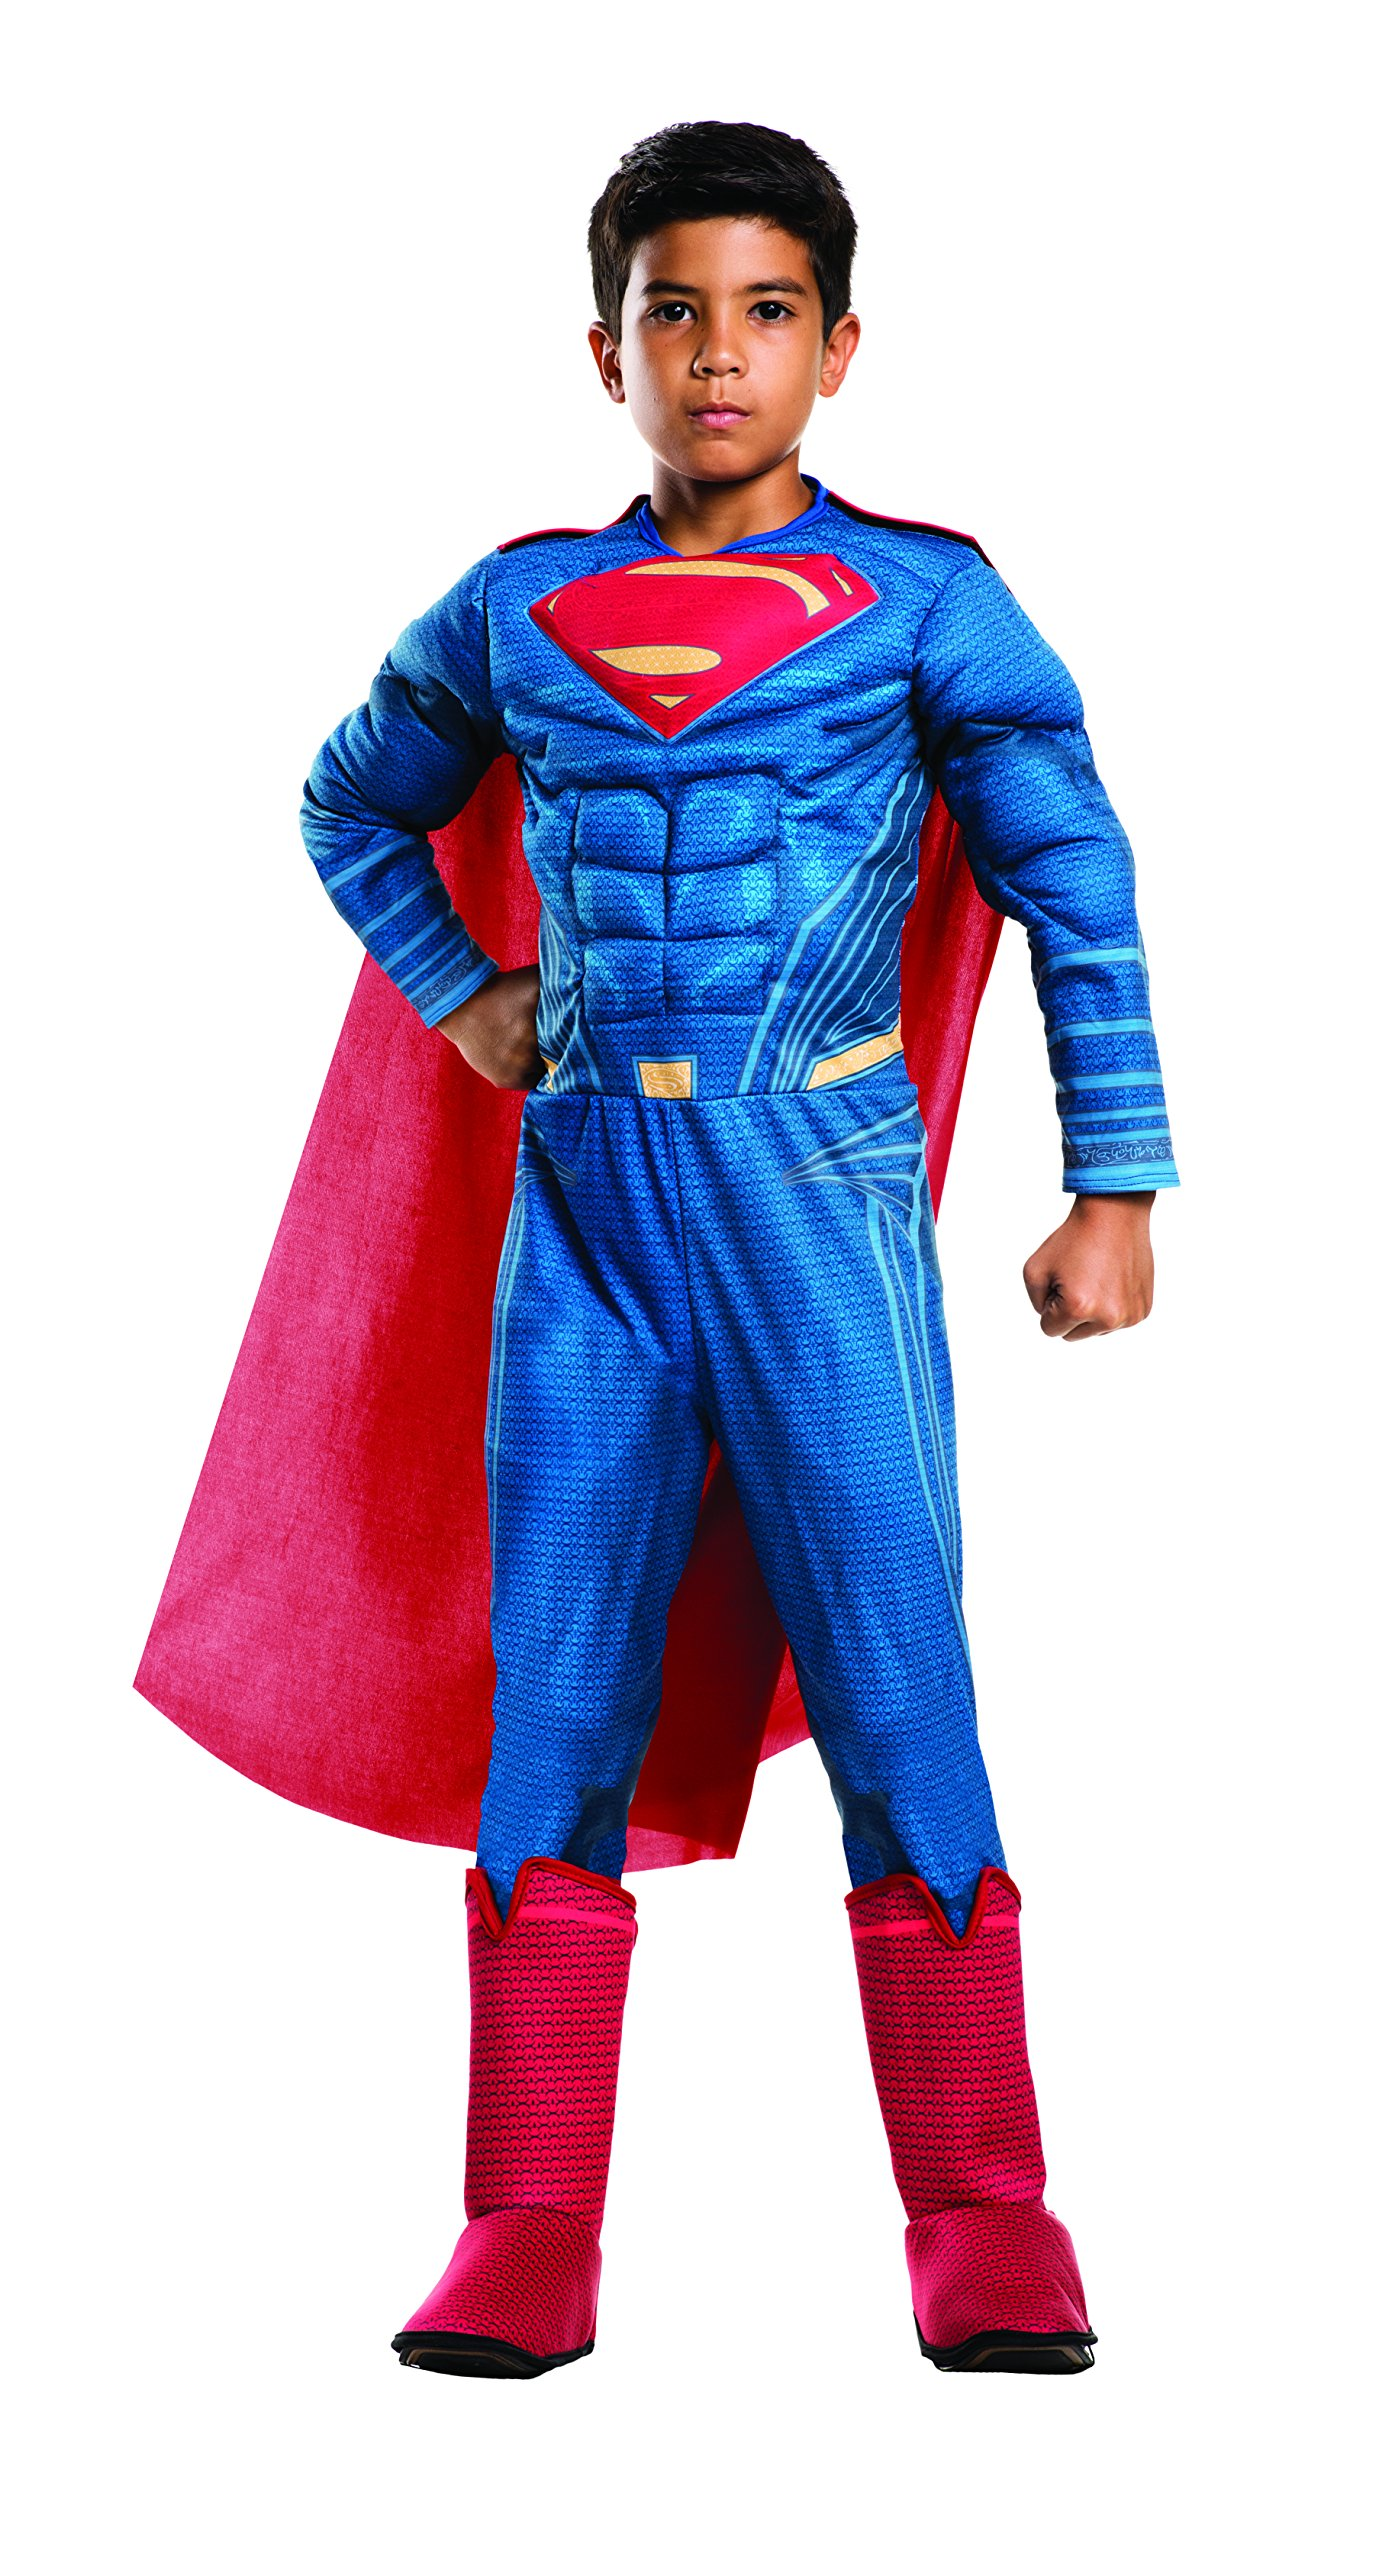 Rubie's Costume: Dawn of Justice Deluxe Muscle Chest Superman Costume, Small by Rubie's